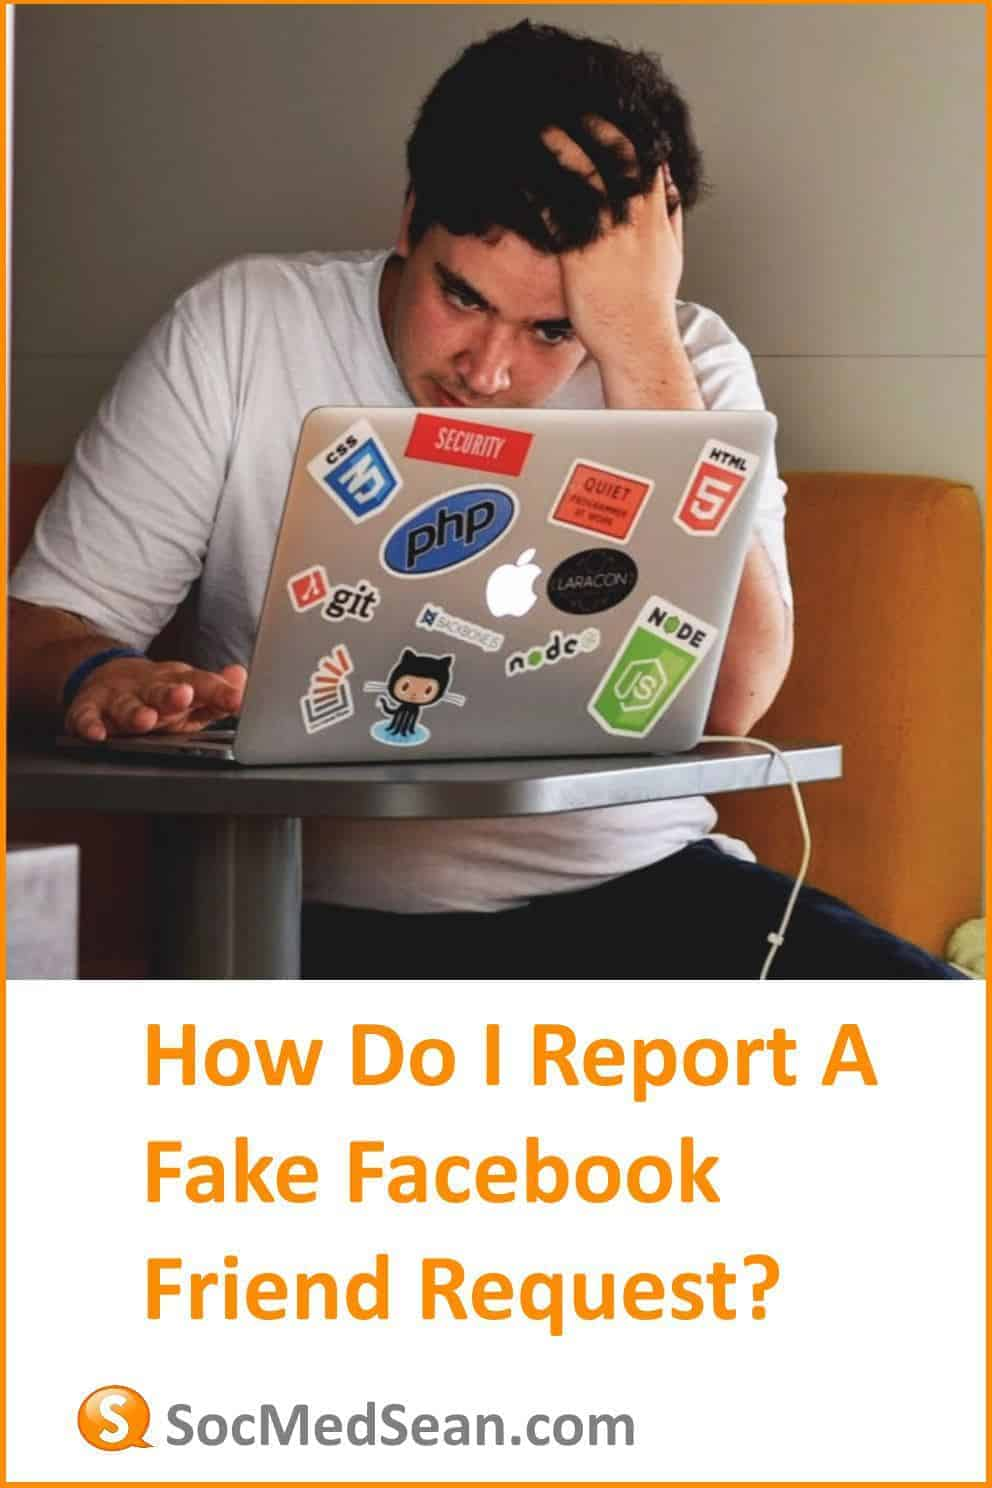 Instructions and tips for reporting a fake Facebook friend request